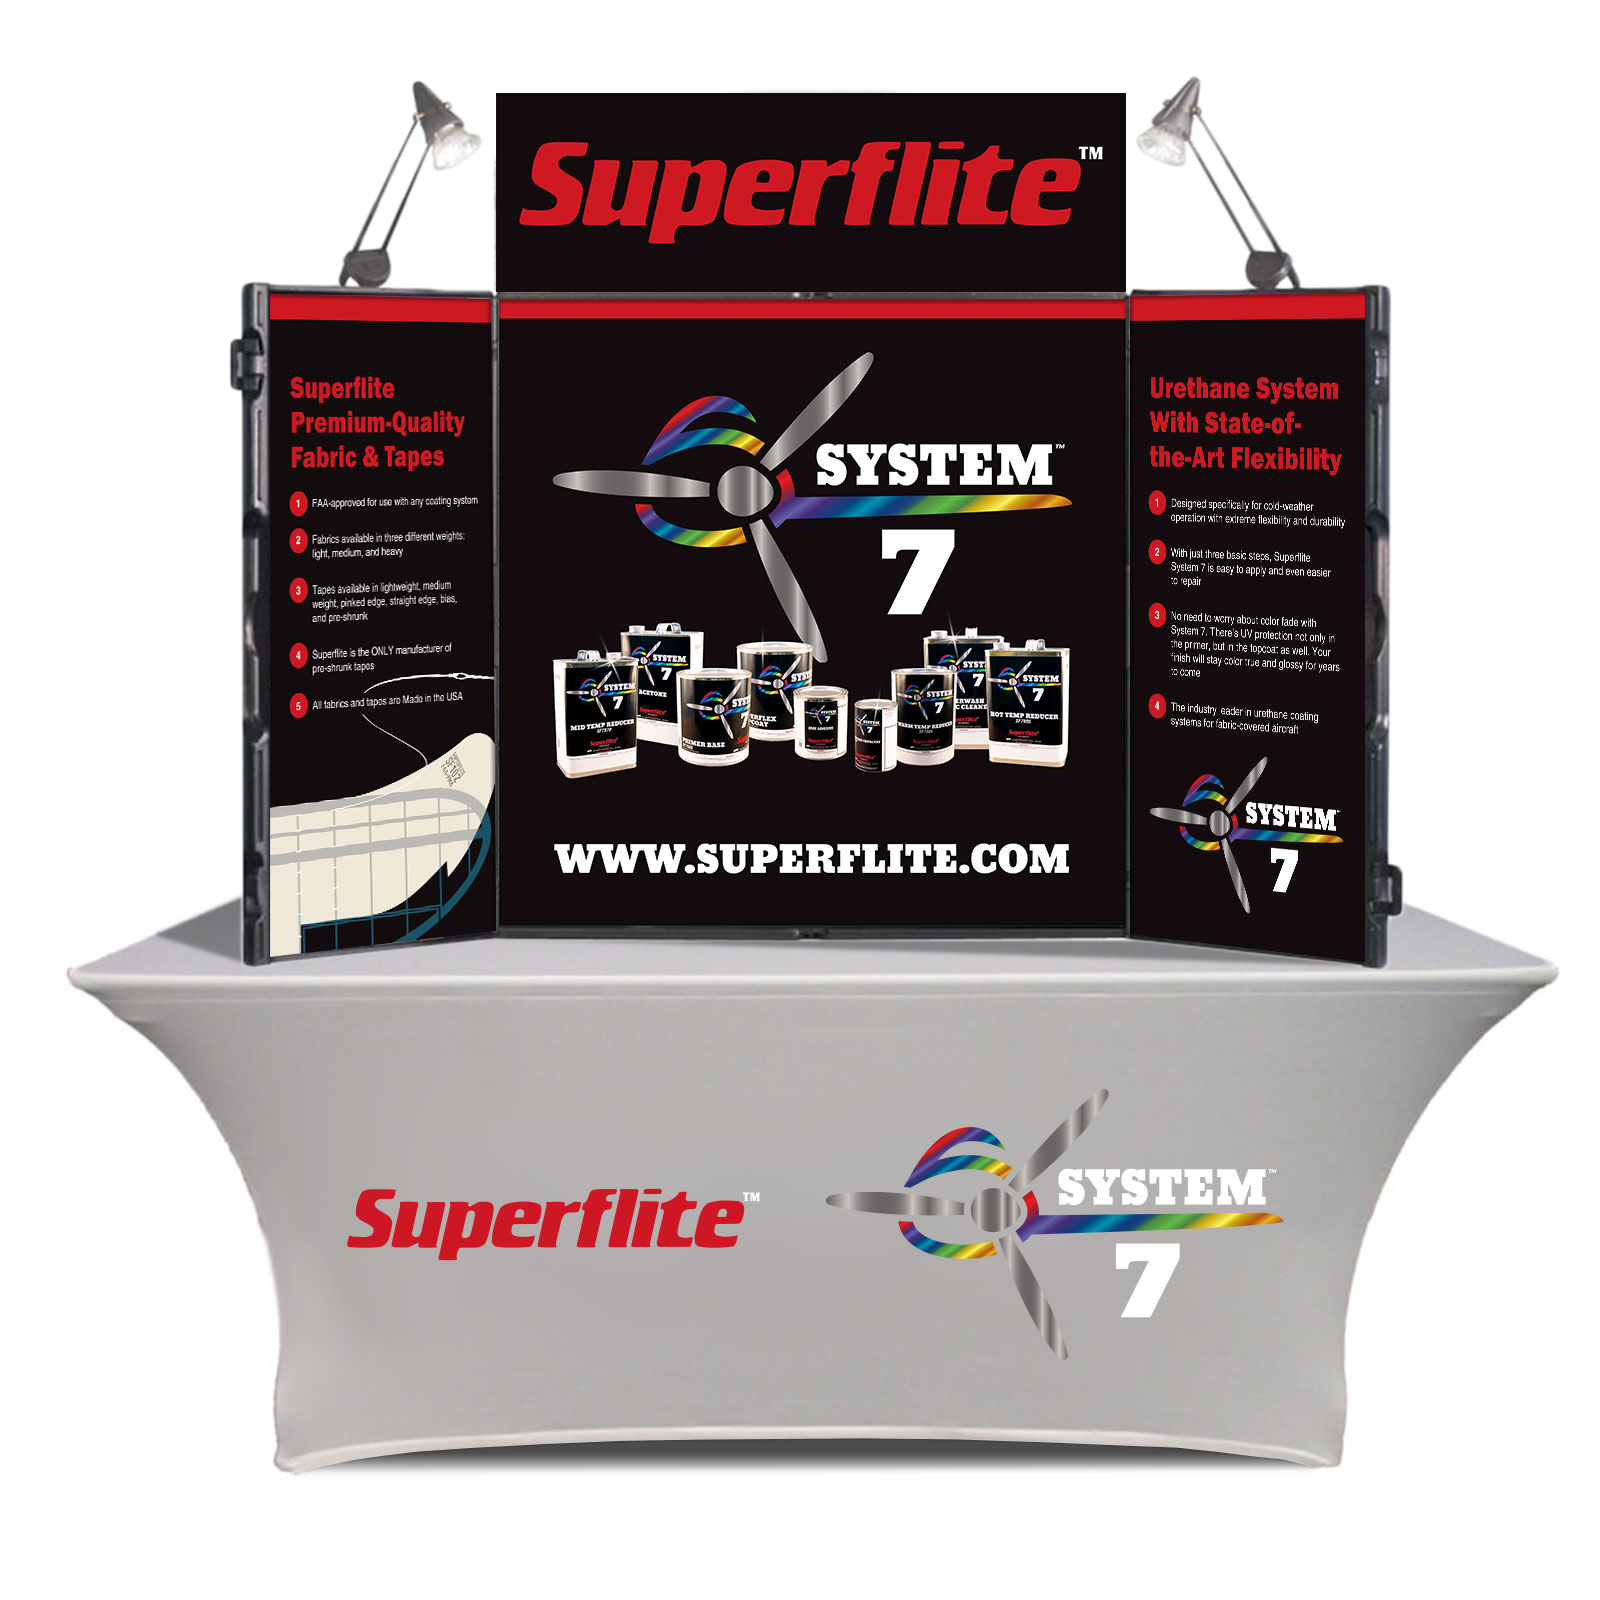 Image of a table-top trade-show display and a branded table throw created for the Superflite System 7 aircraft covering system